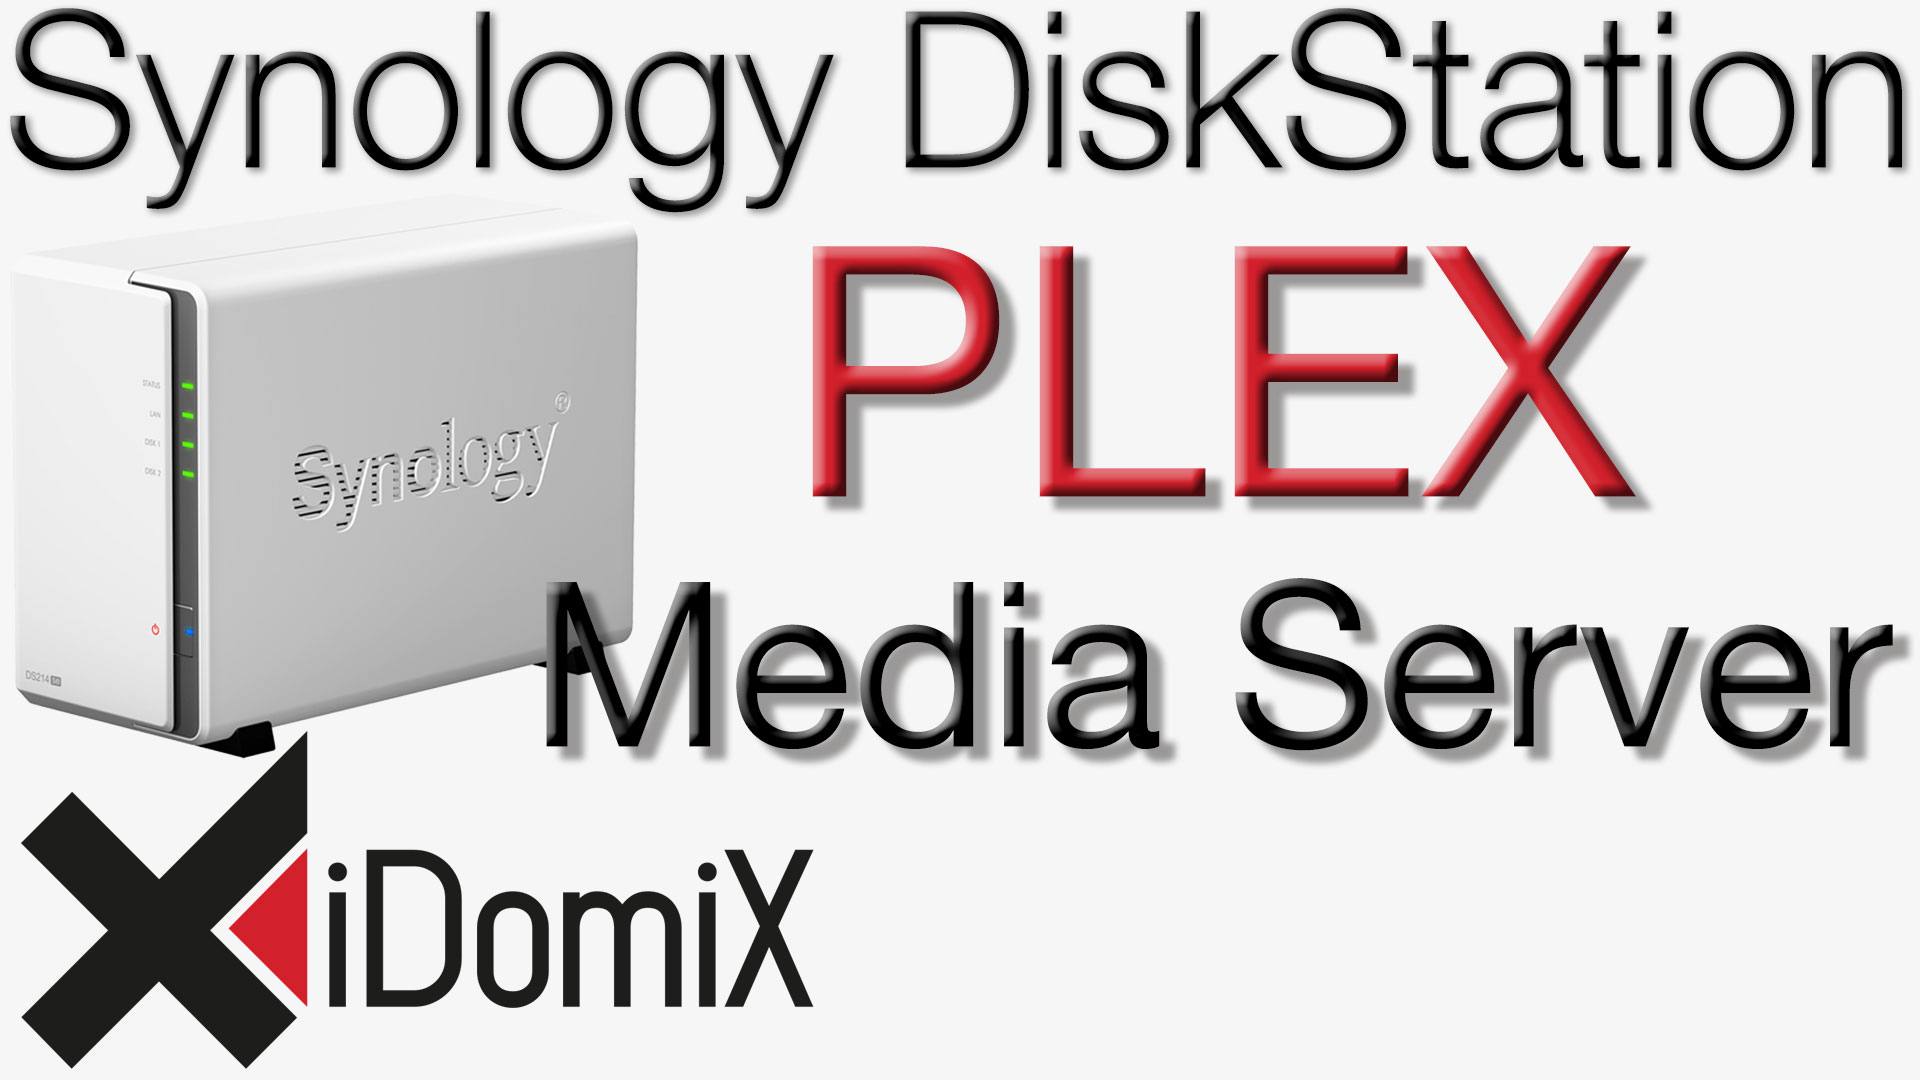 Synology DiskStation Plex Media Server einrichten